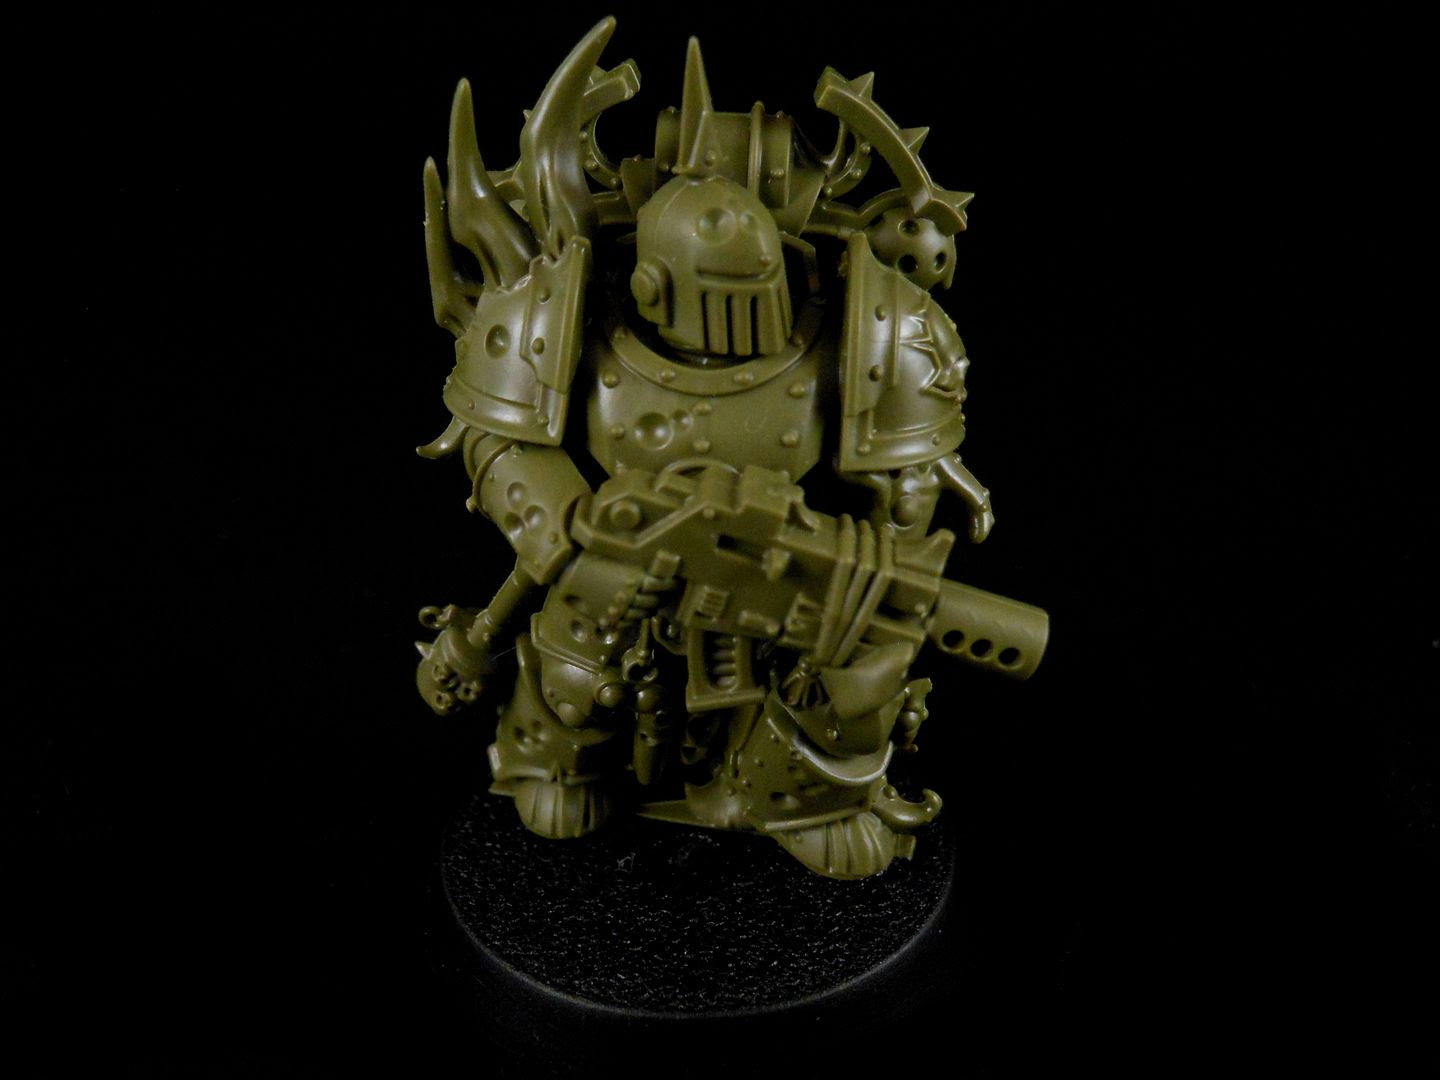 A Death Guard Plague Marine from Warhammer 40,000: First Strike.